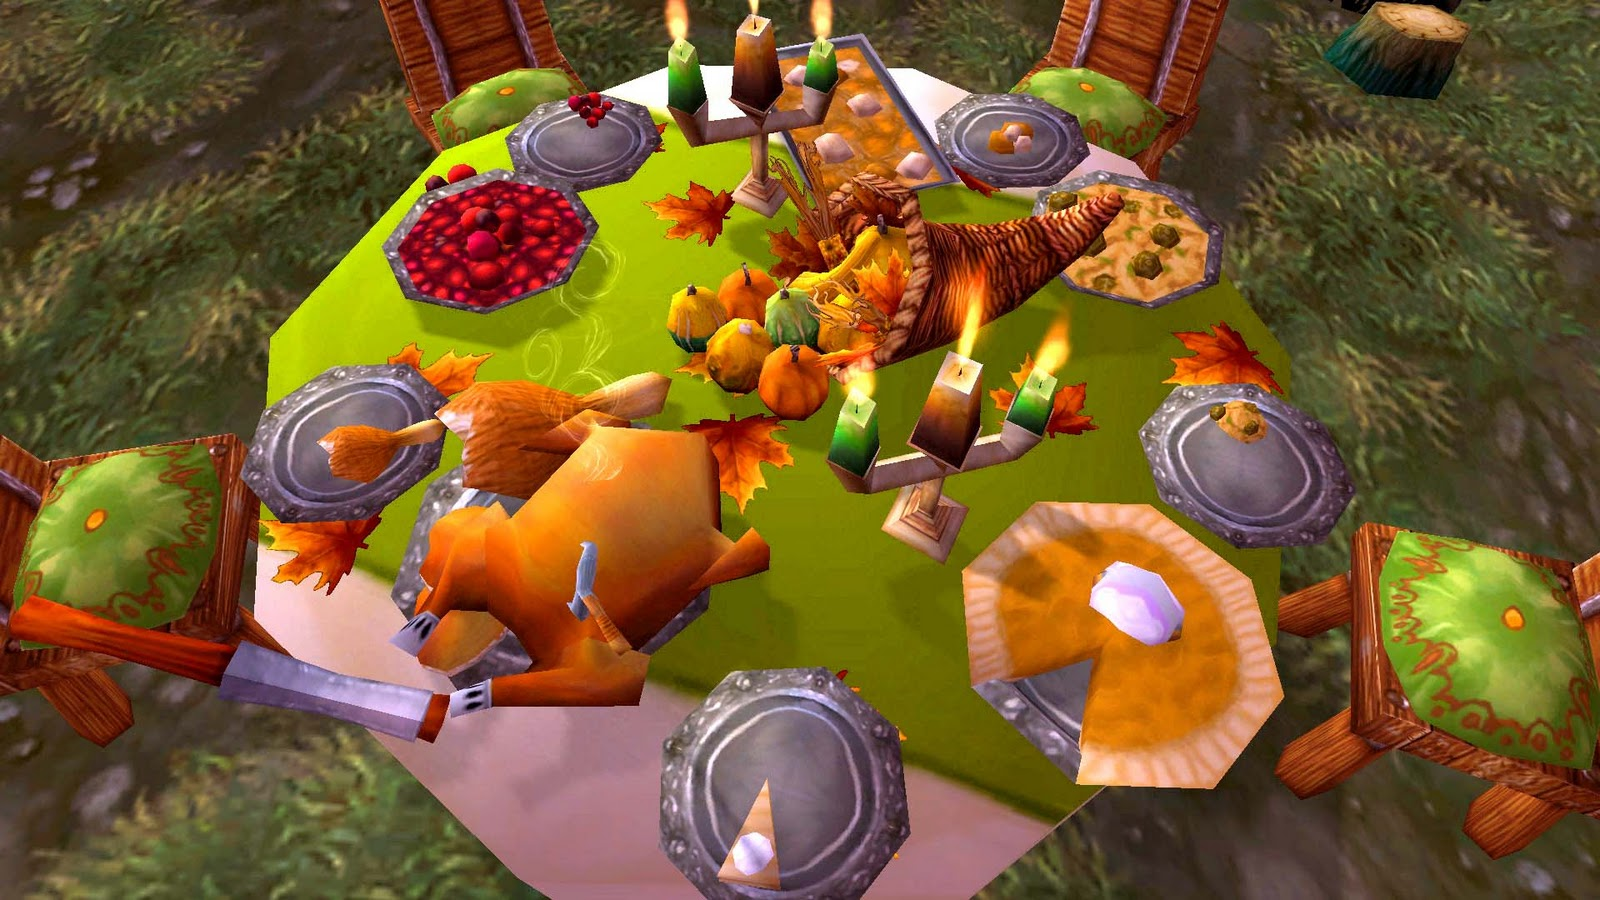 3d Game Wallpaper Red Cow Rise Pilgrim S Bounty Share Plentiful Food